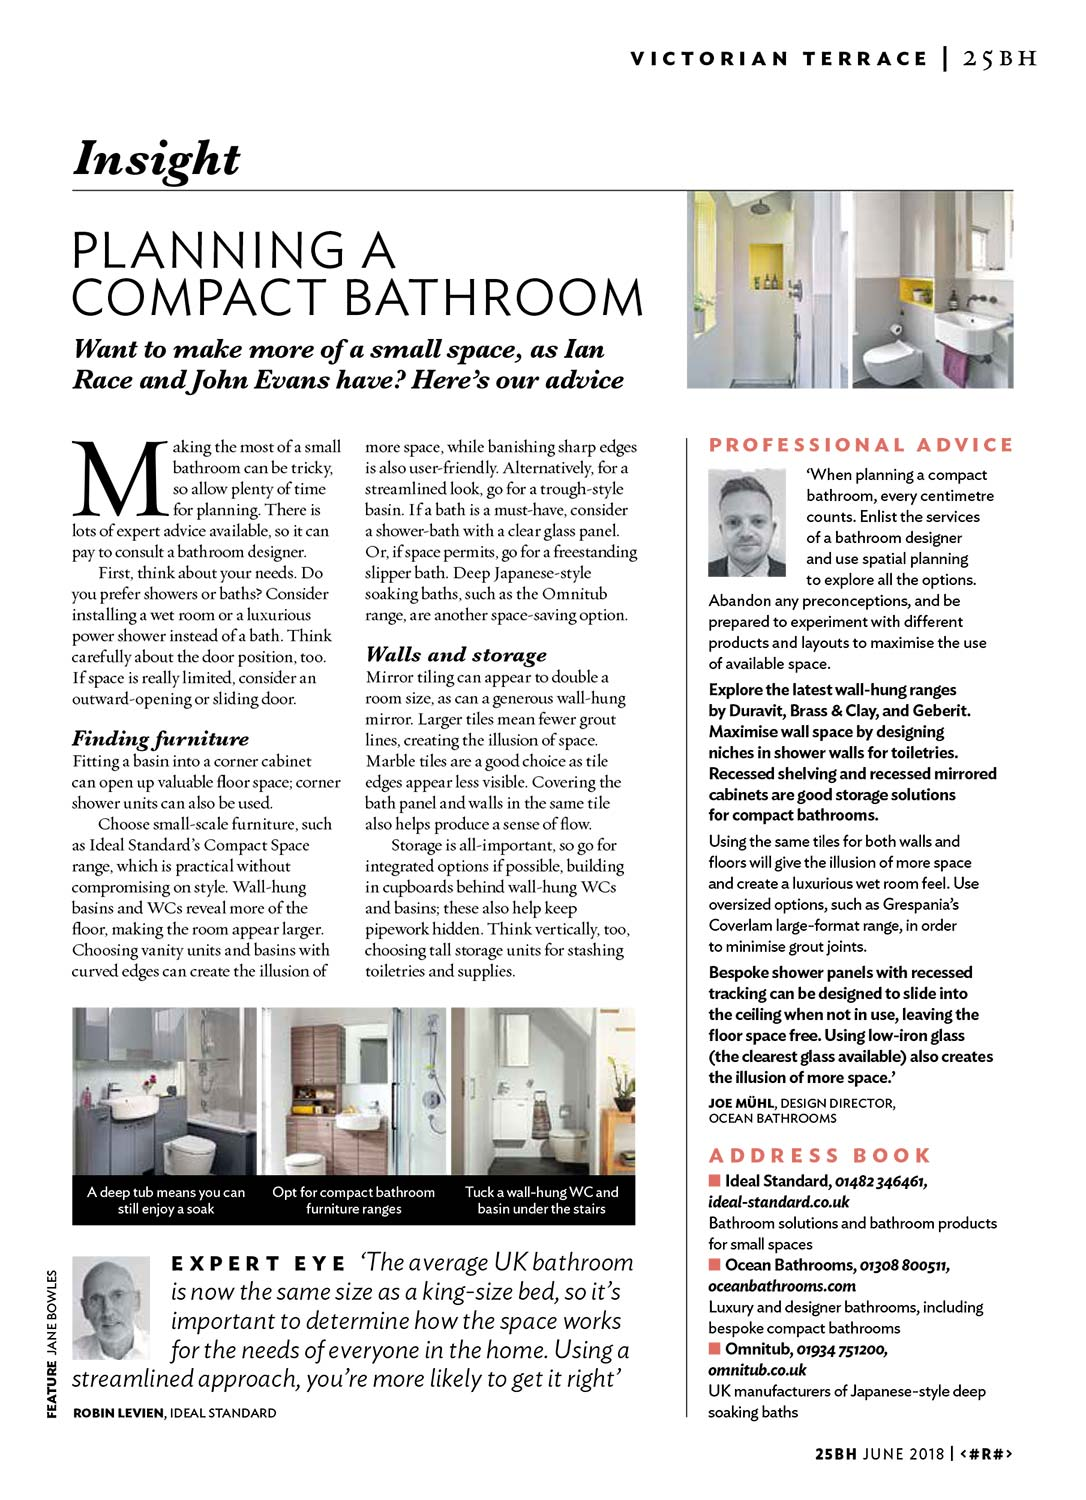 25 Beautiful Homes insights - planning a compact bathroom